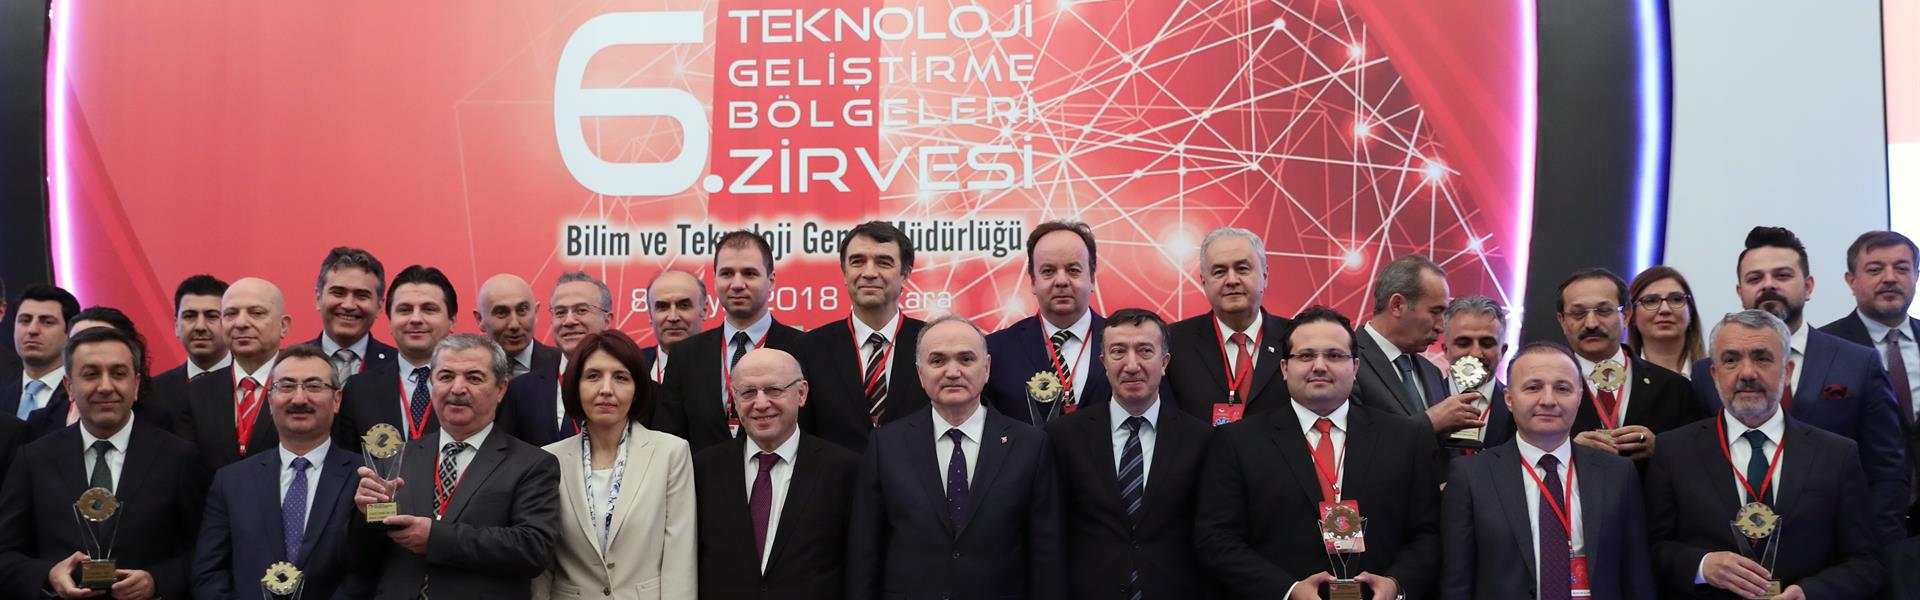 "Istanbul-University-Teknokent-came-in-second-place-among-""Emerging-Technology-Development-Zones"""